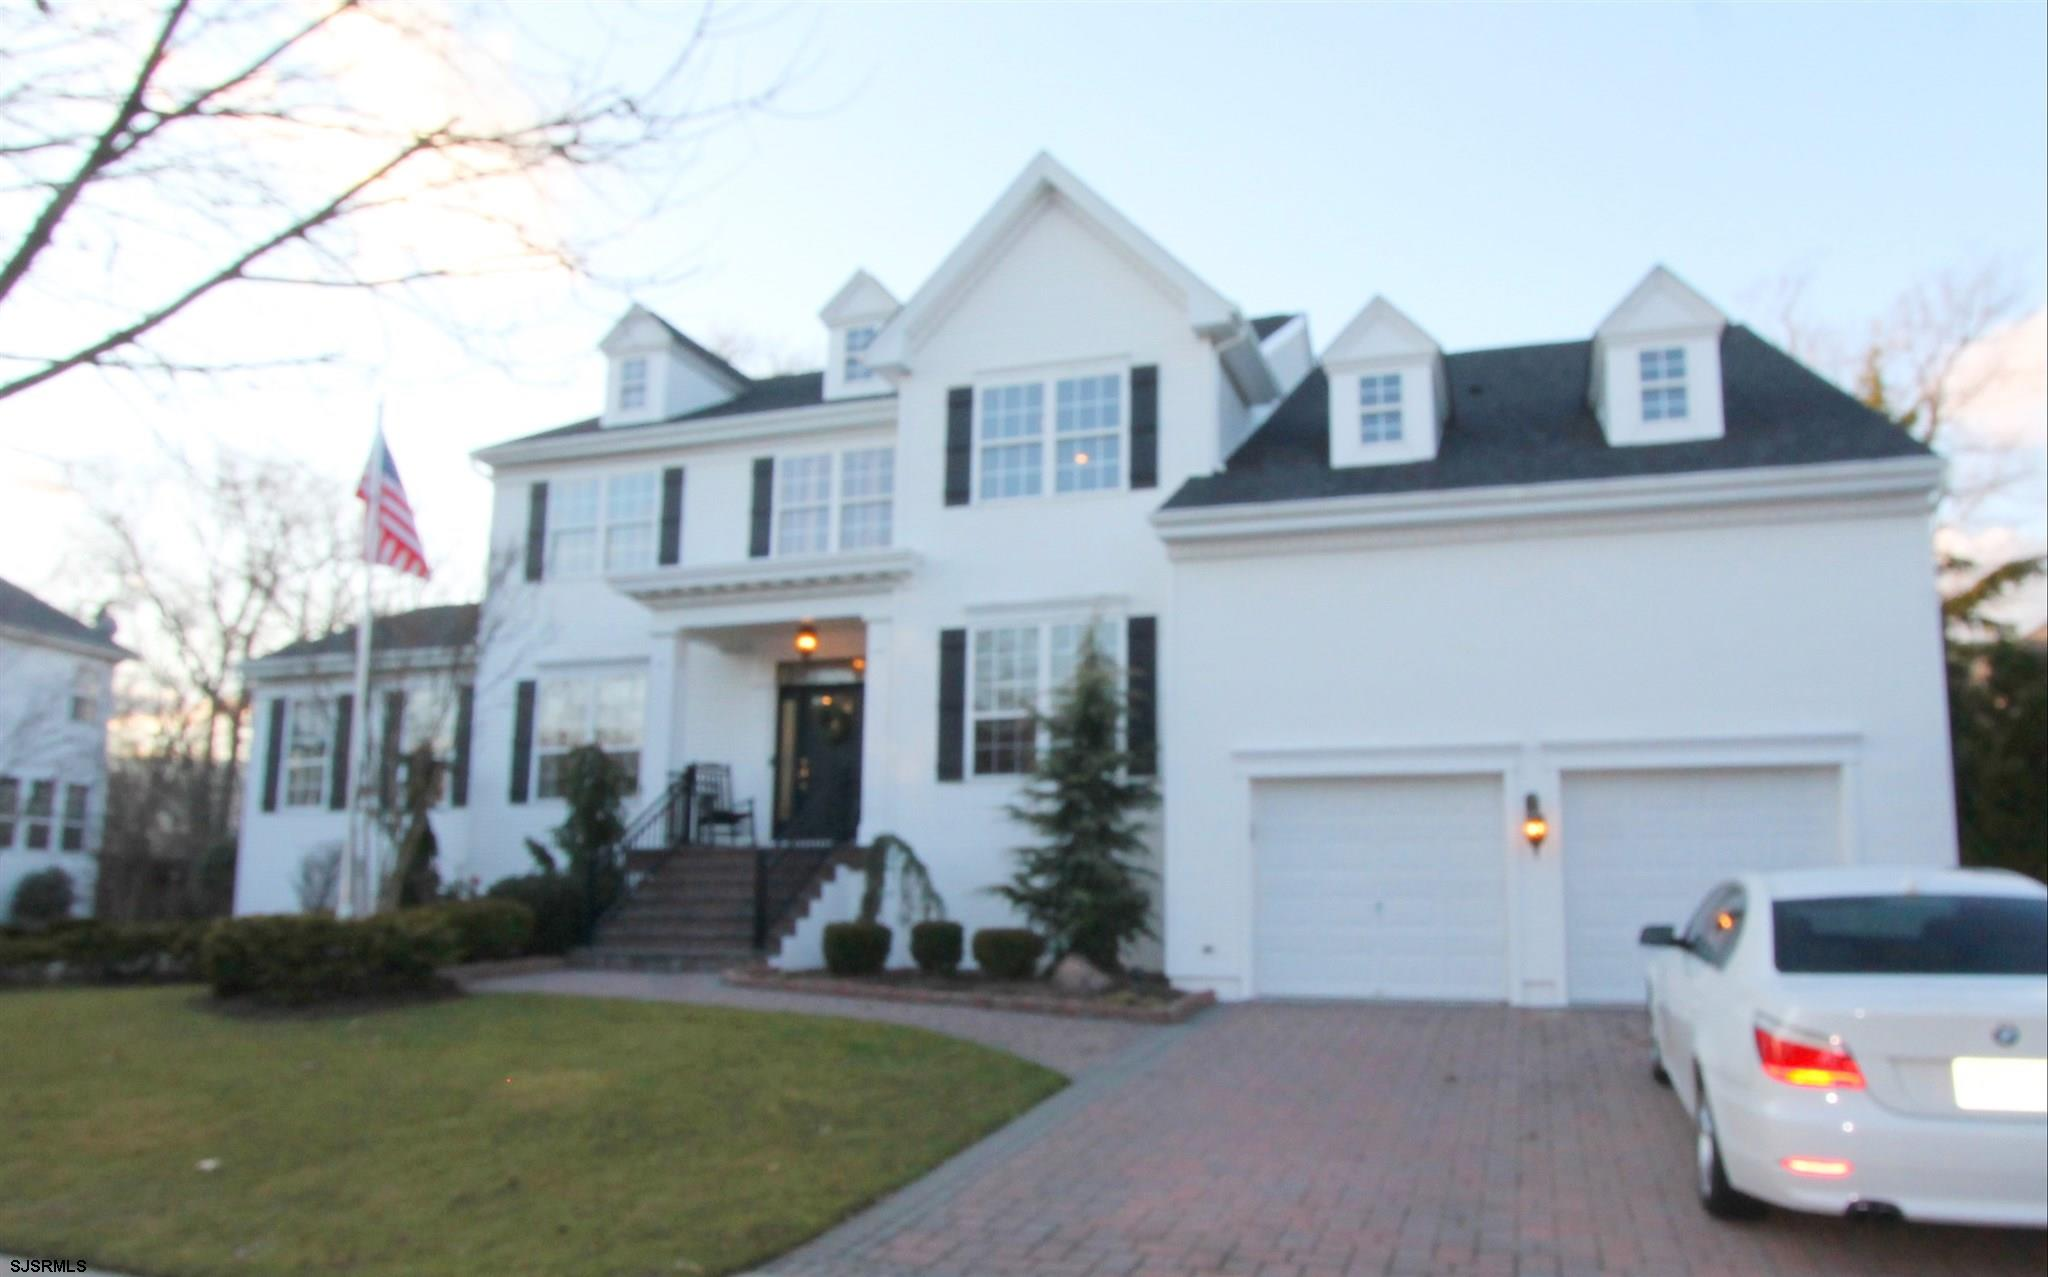 Stately & stunning is this Sutton woods home which backs up to privacy trees! Exterior upgrades & up